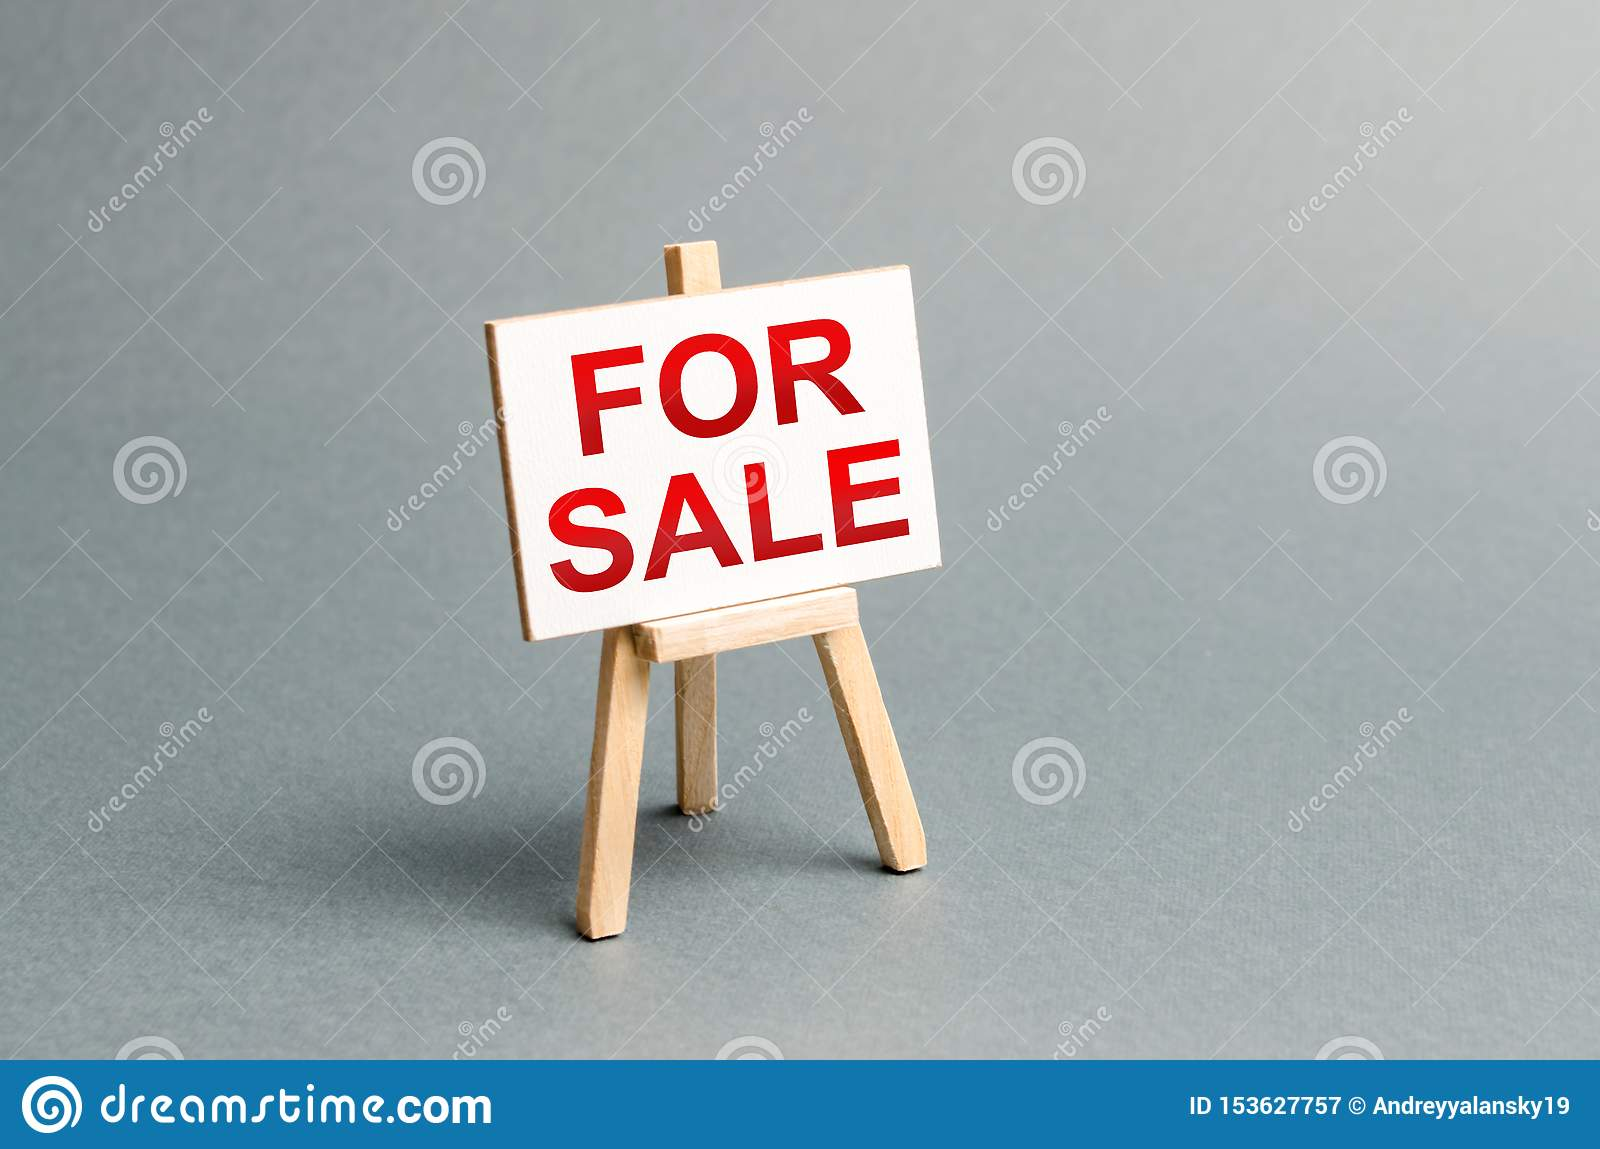 Information stand with an inscription FOR SALE. Announcement of the sale and attracting potential buyers. Advertising campaign